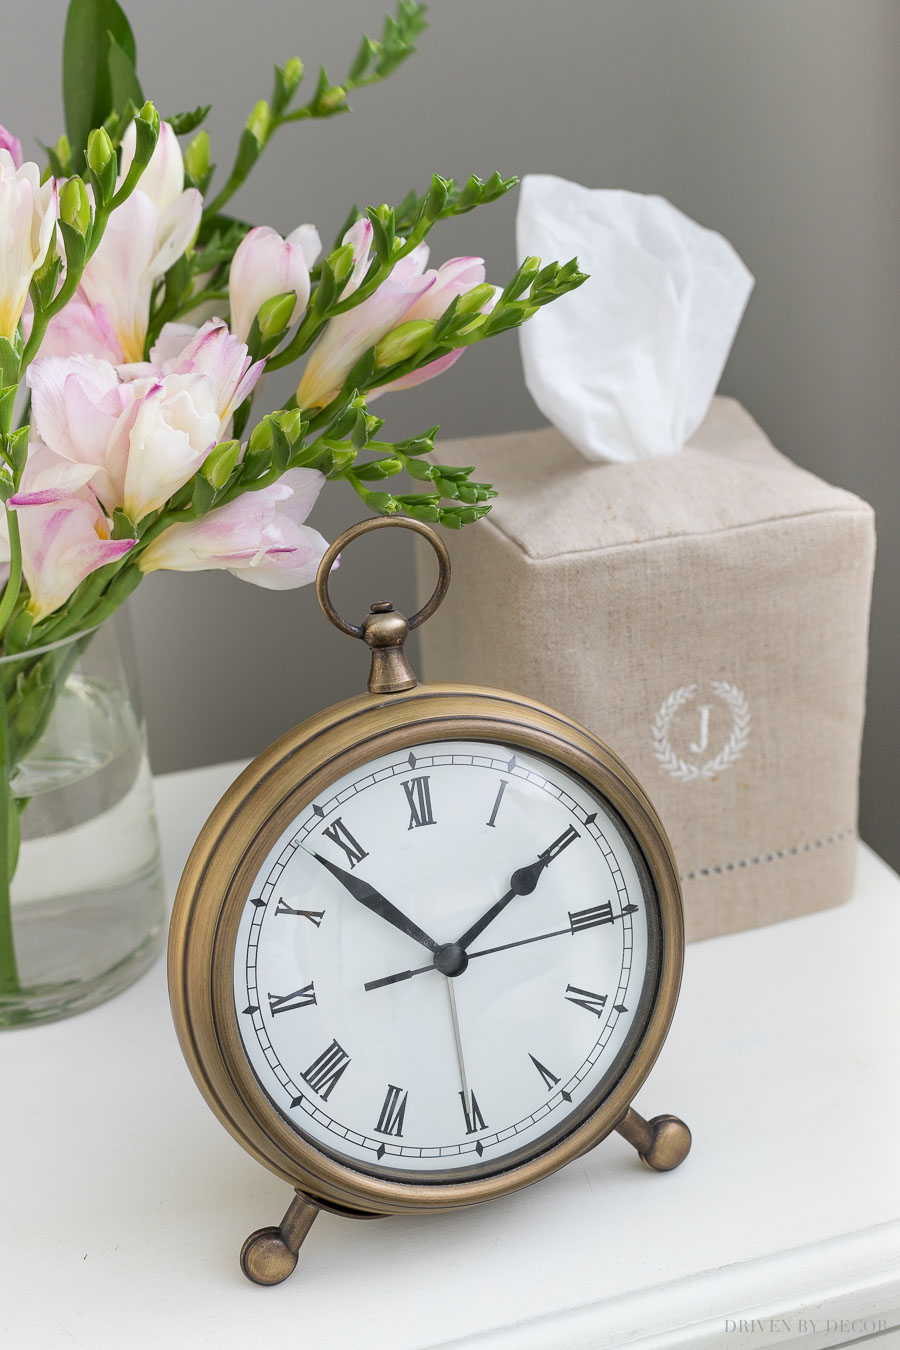 Must-haves for your guest bedroom nightstand - a clock (love this one!) and a box of tissues (love this pretty tissue box cover!)